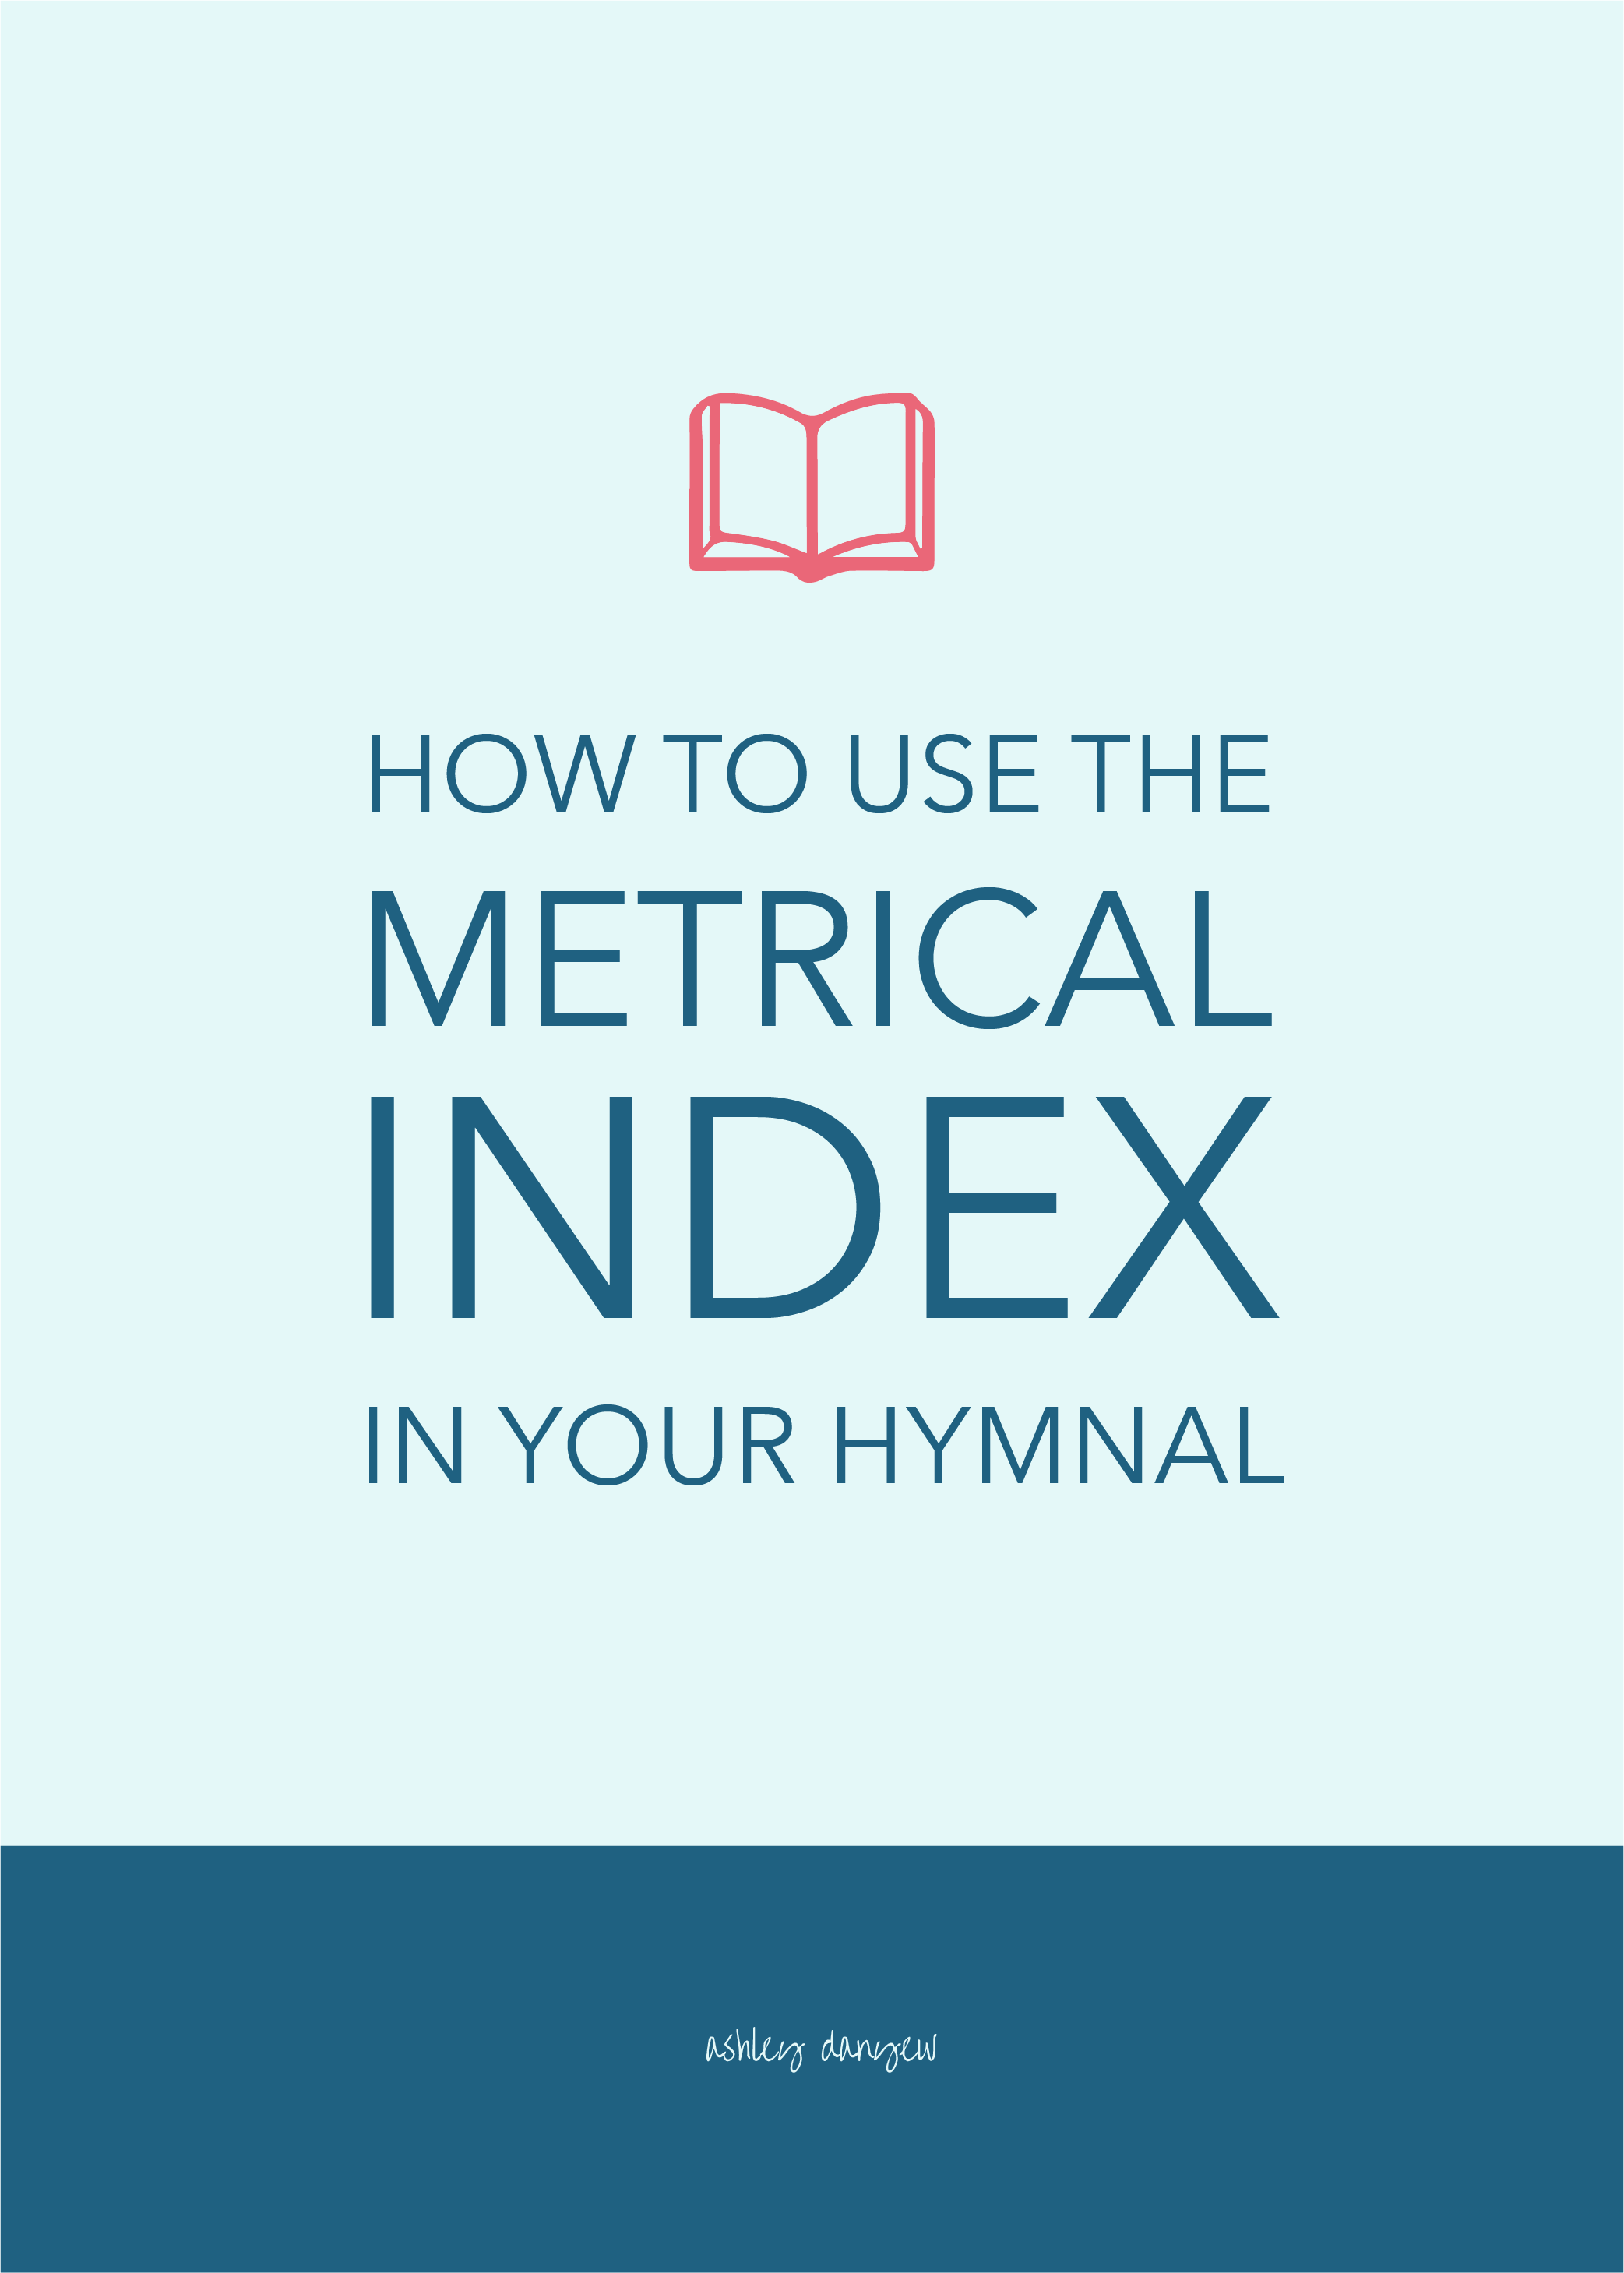 How to Use the Metrical Index in Your Hymnal-49.png